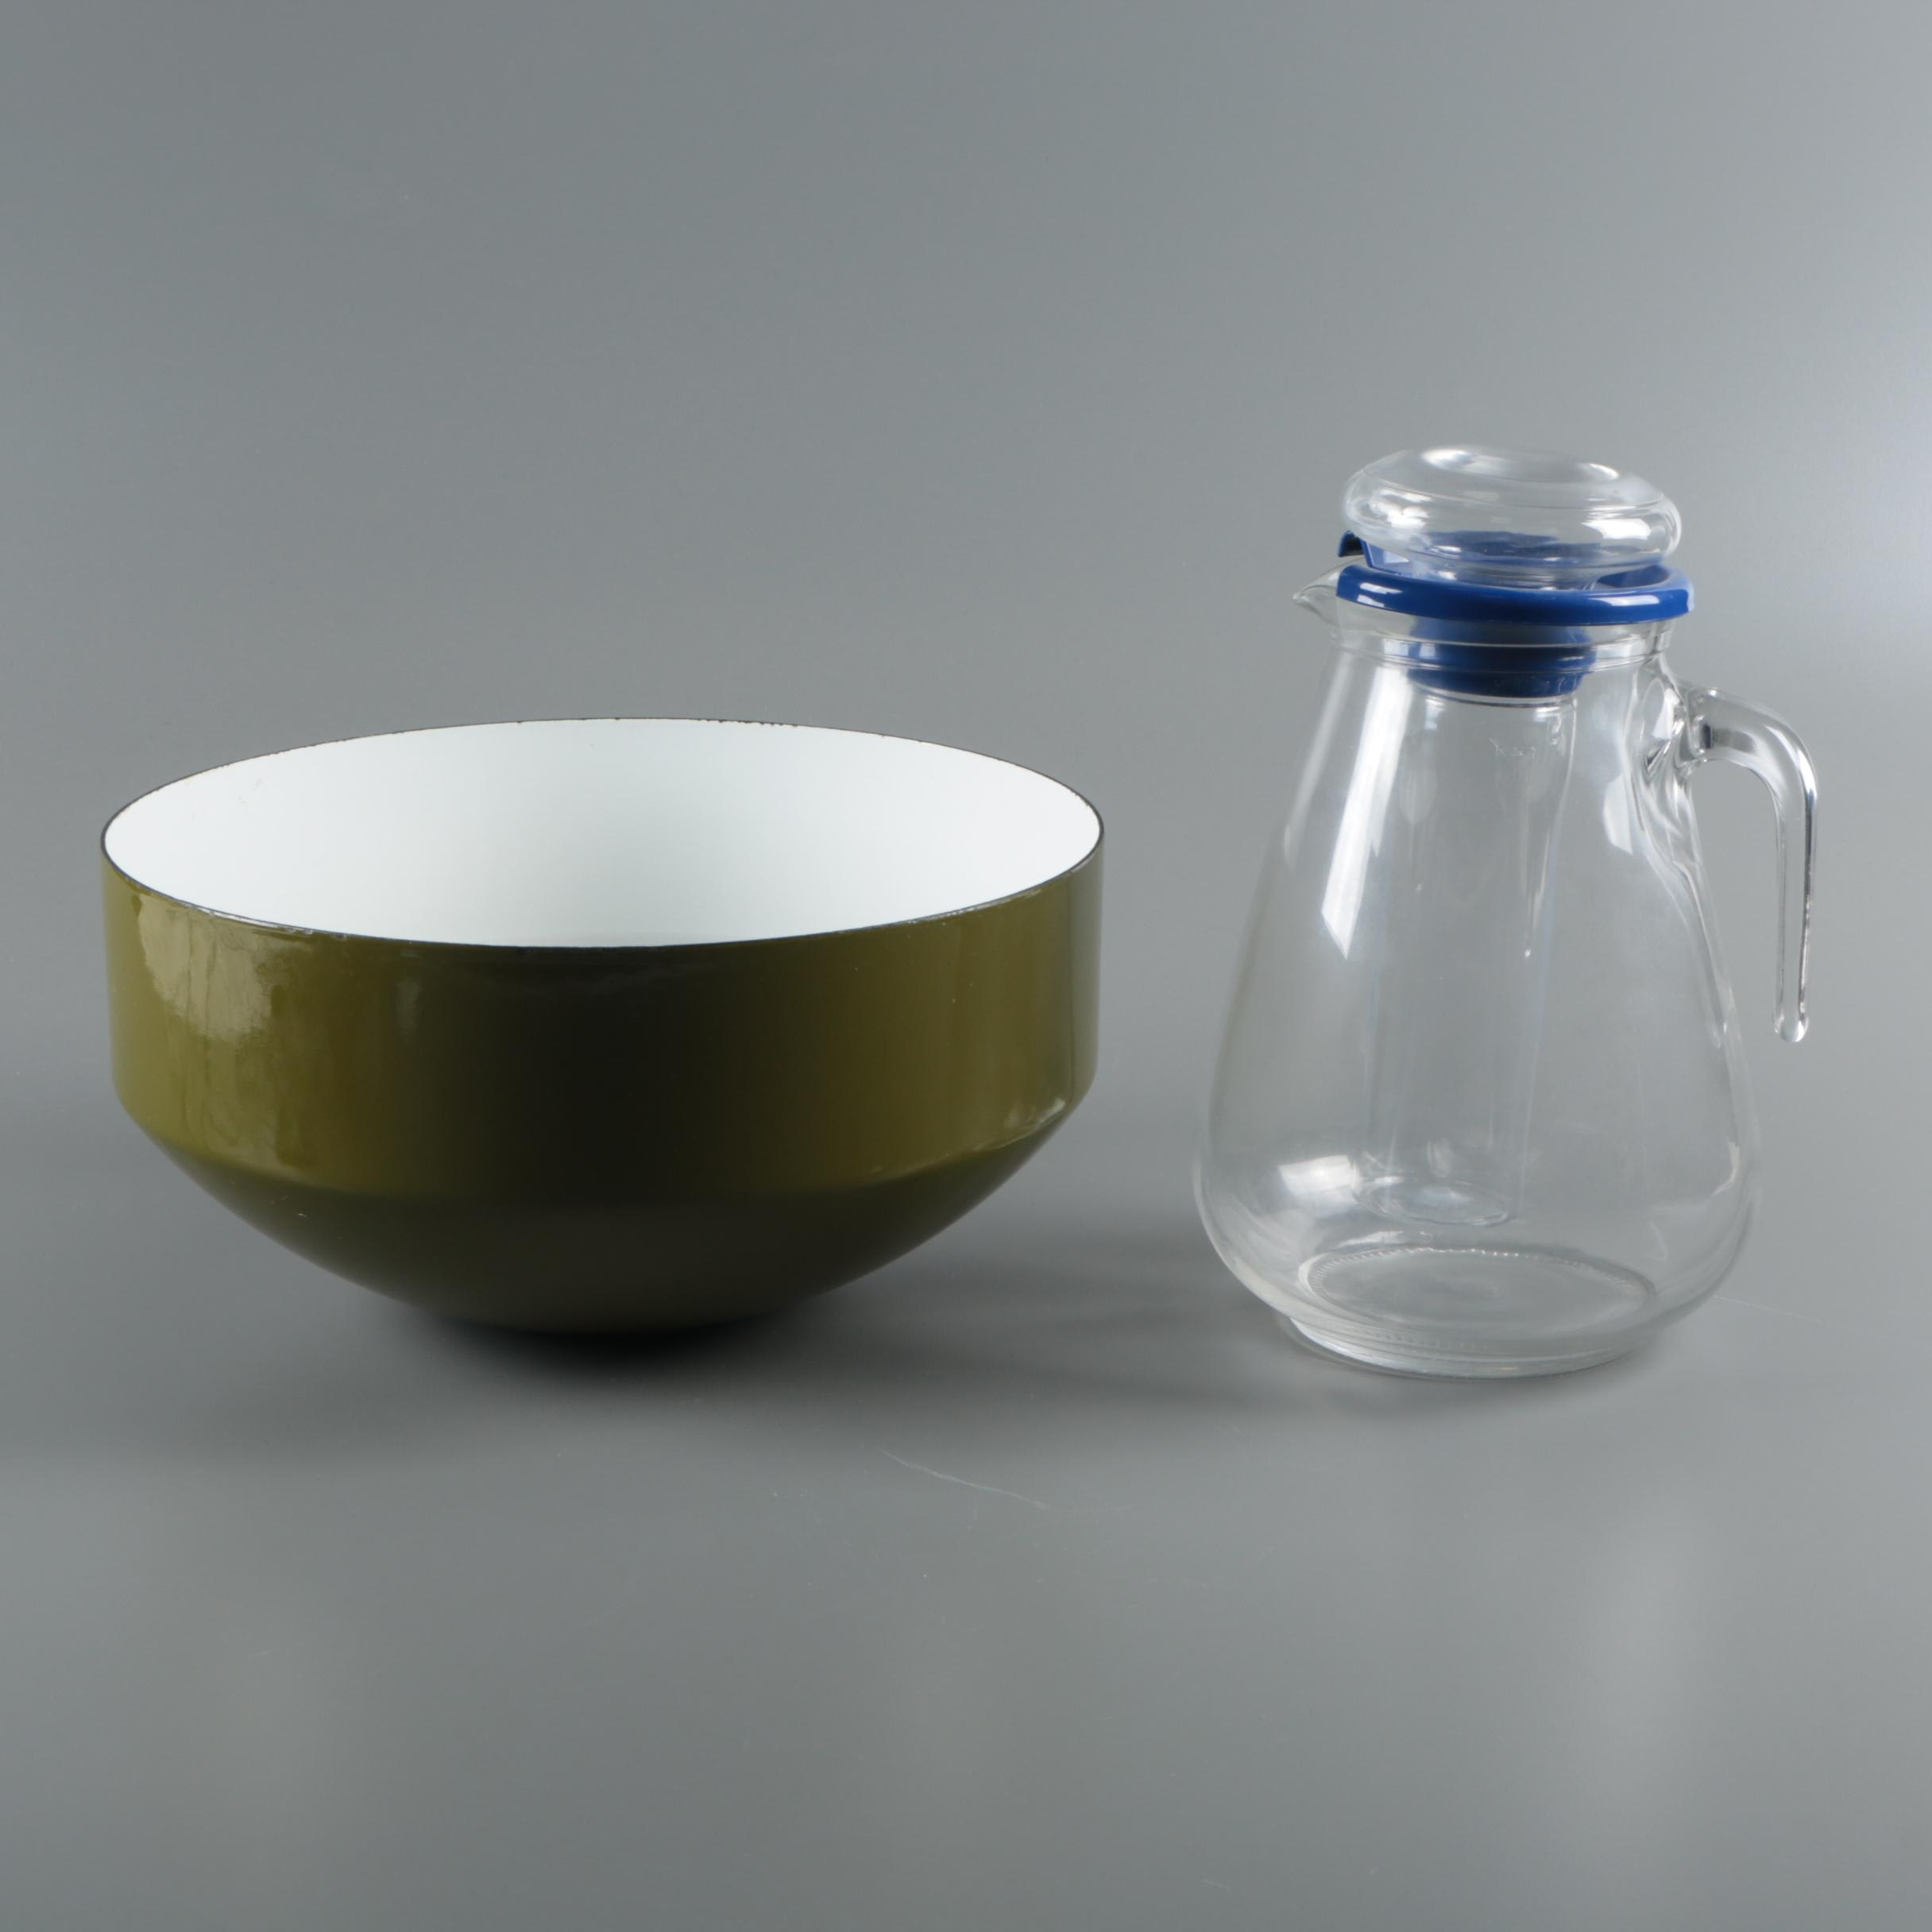 Copco Michael Lax Design Serving Bowl with Italian Glass Pitcher